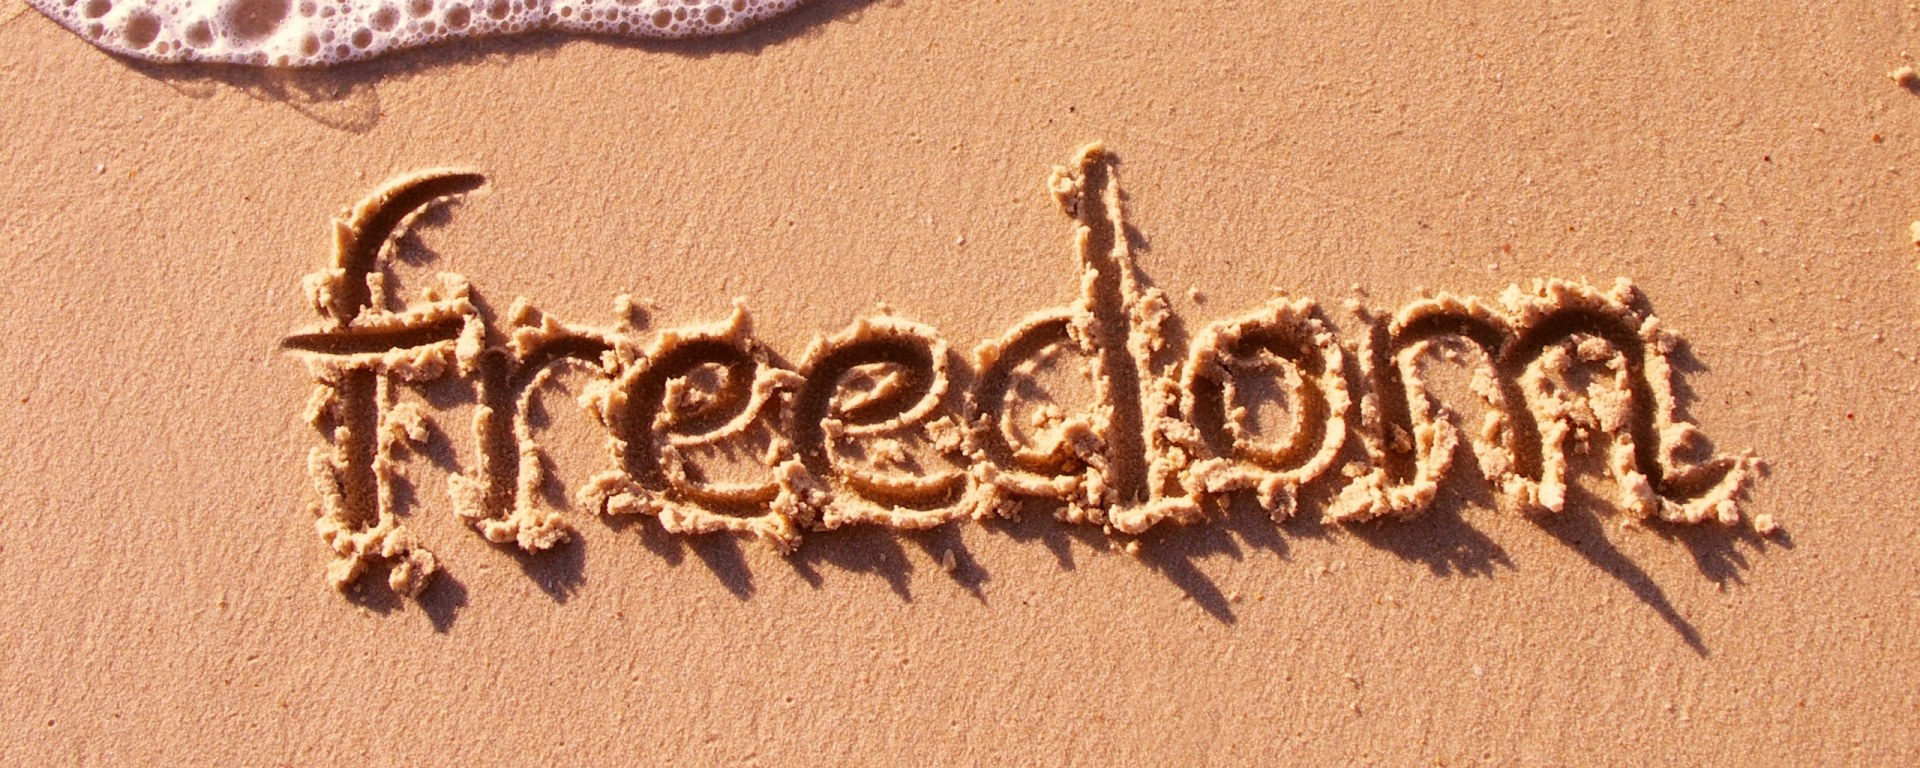 freedom in the sand